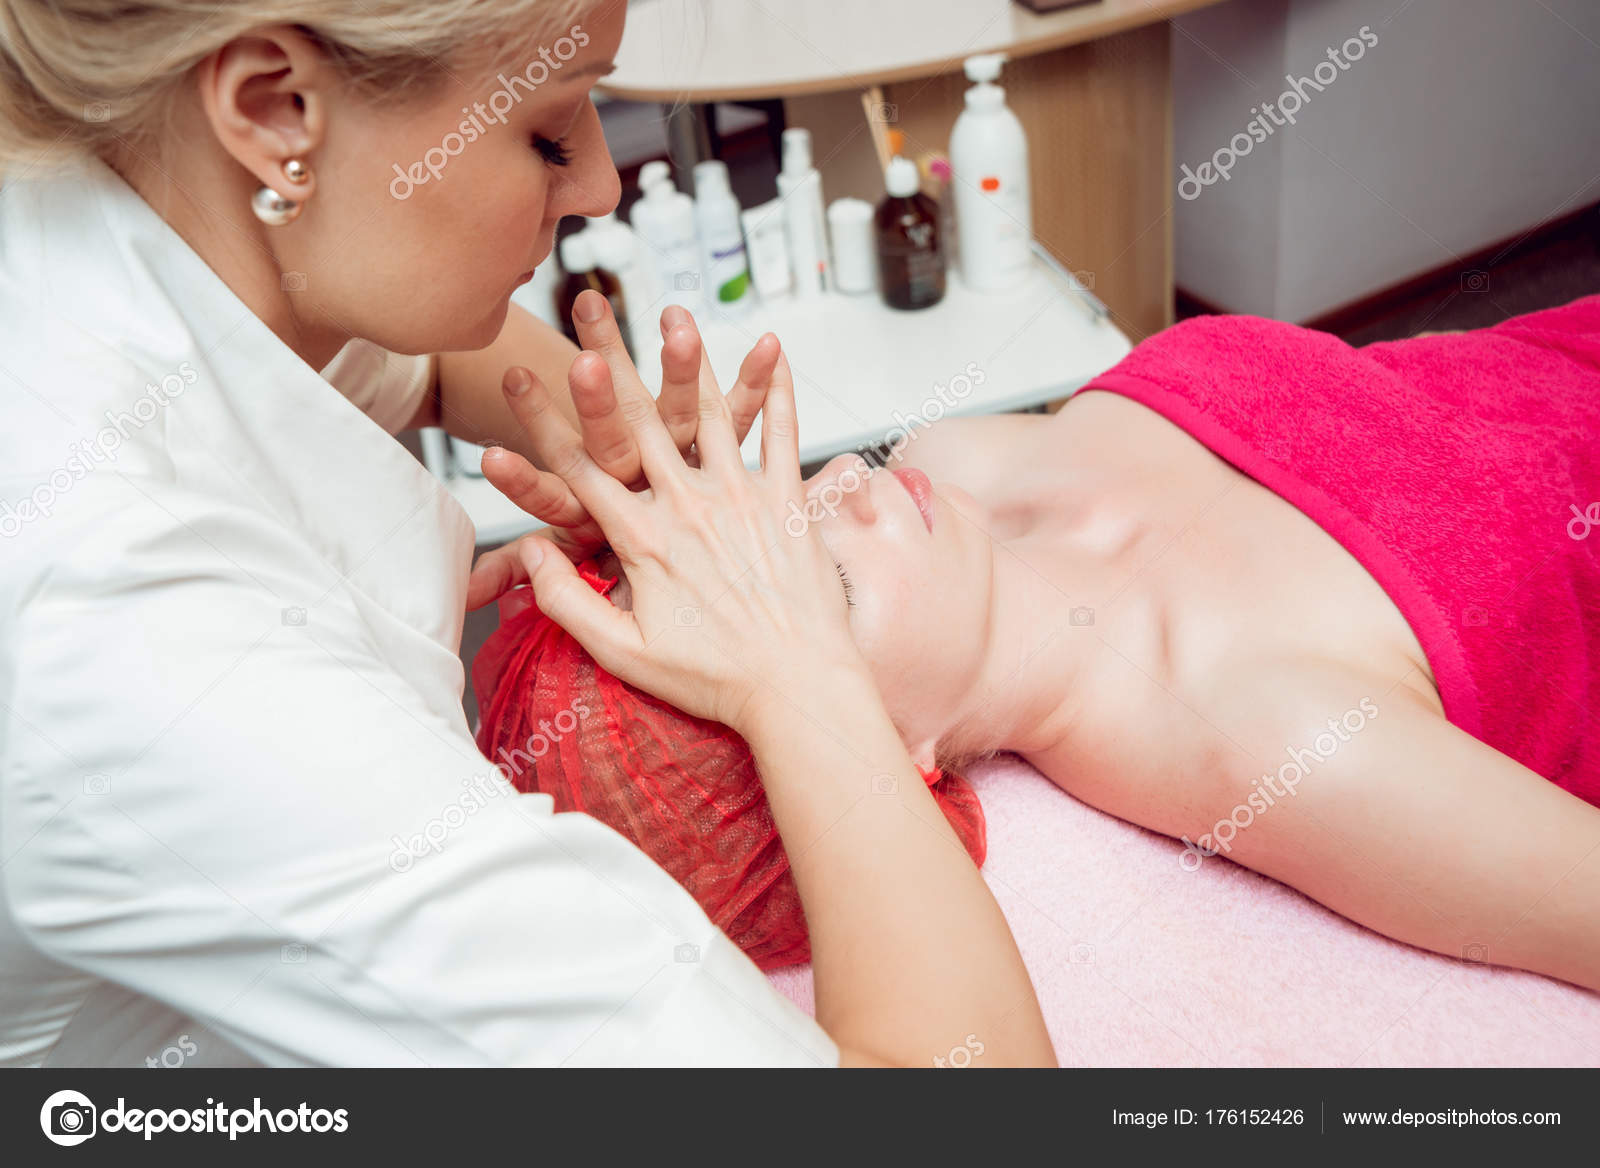 Where Can I Get Full Body Massage Full Body Massage Therapy Stock Photo Romaset 176152426